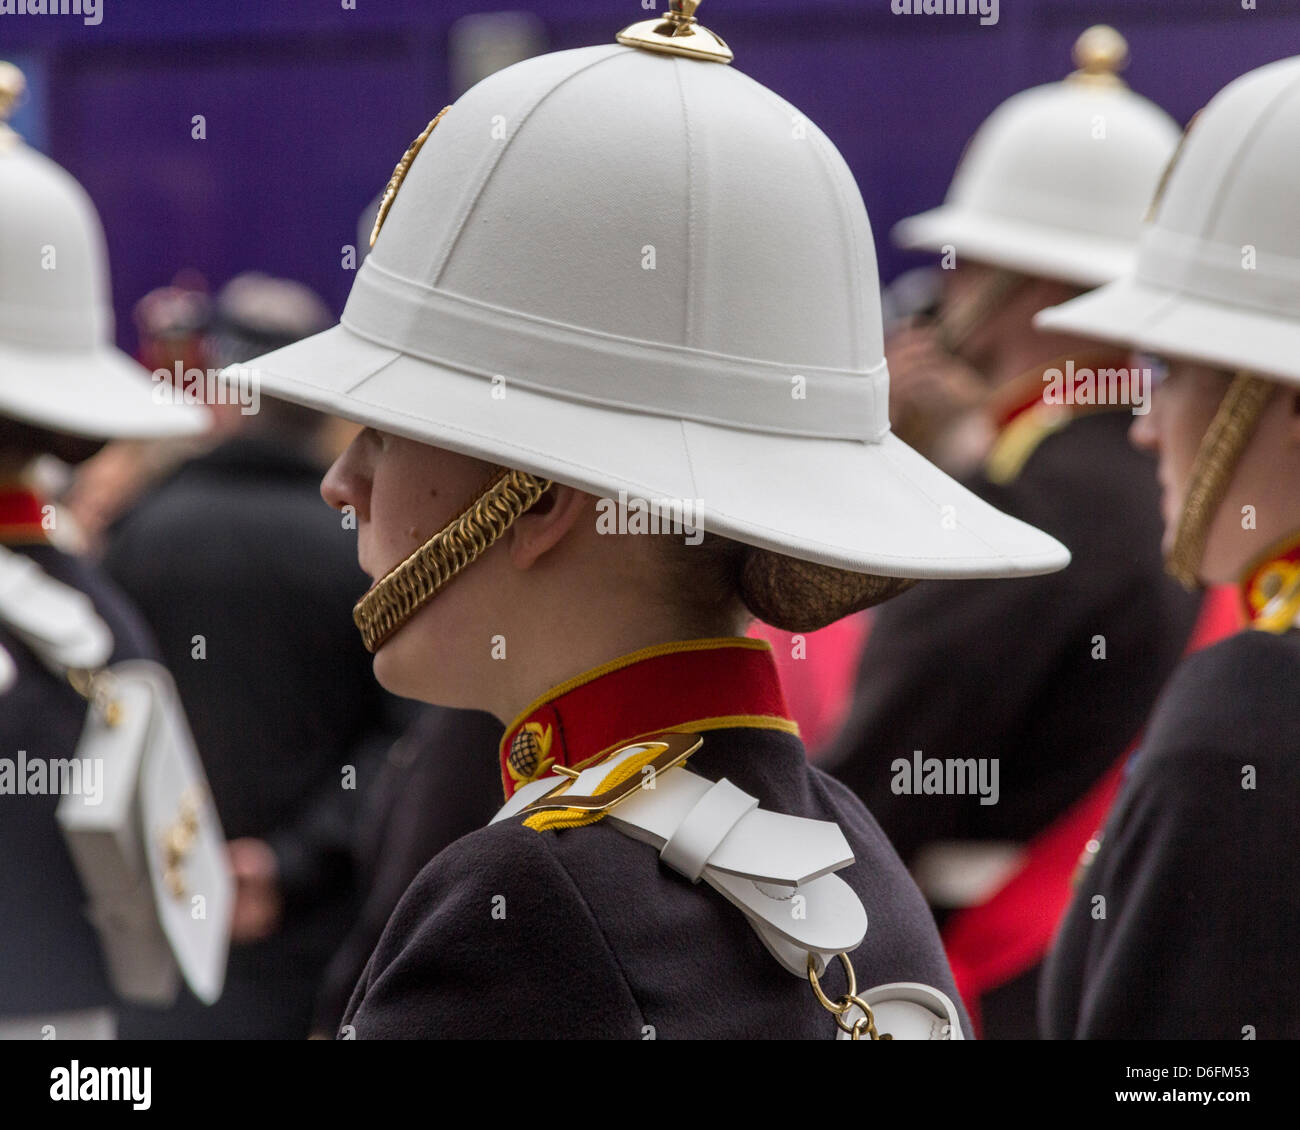 63ca15f45b76f Pith Helmets Stock Photos & Pith Helmets Stock Images - Page 2 - Alamy